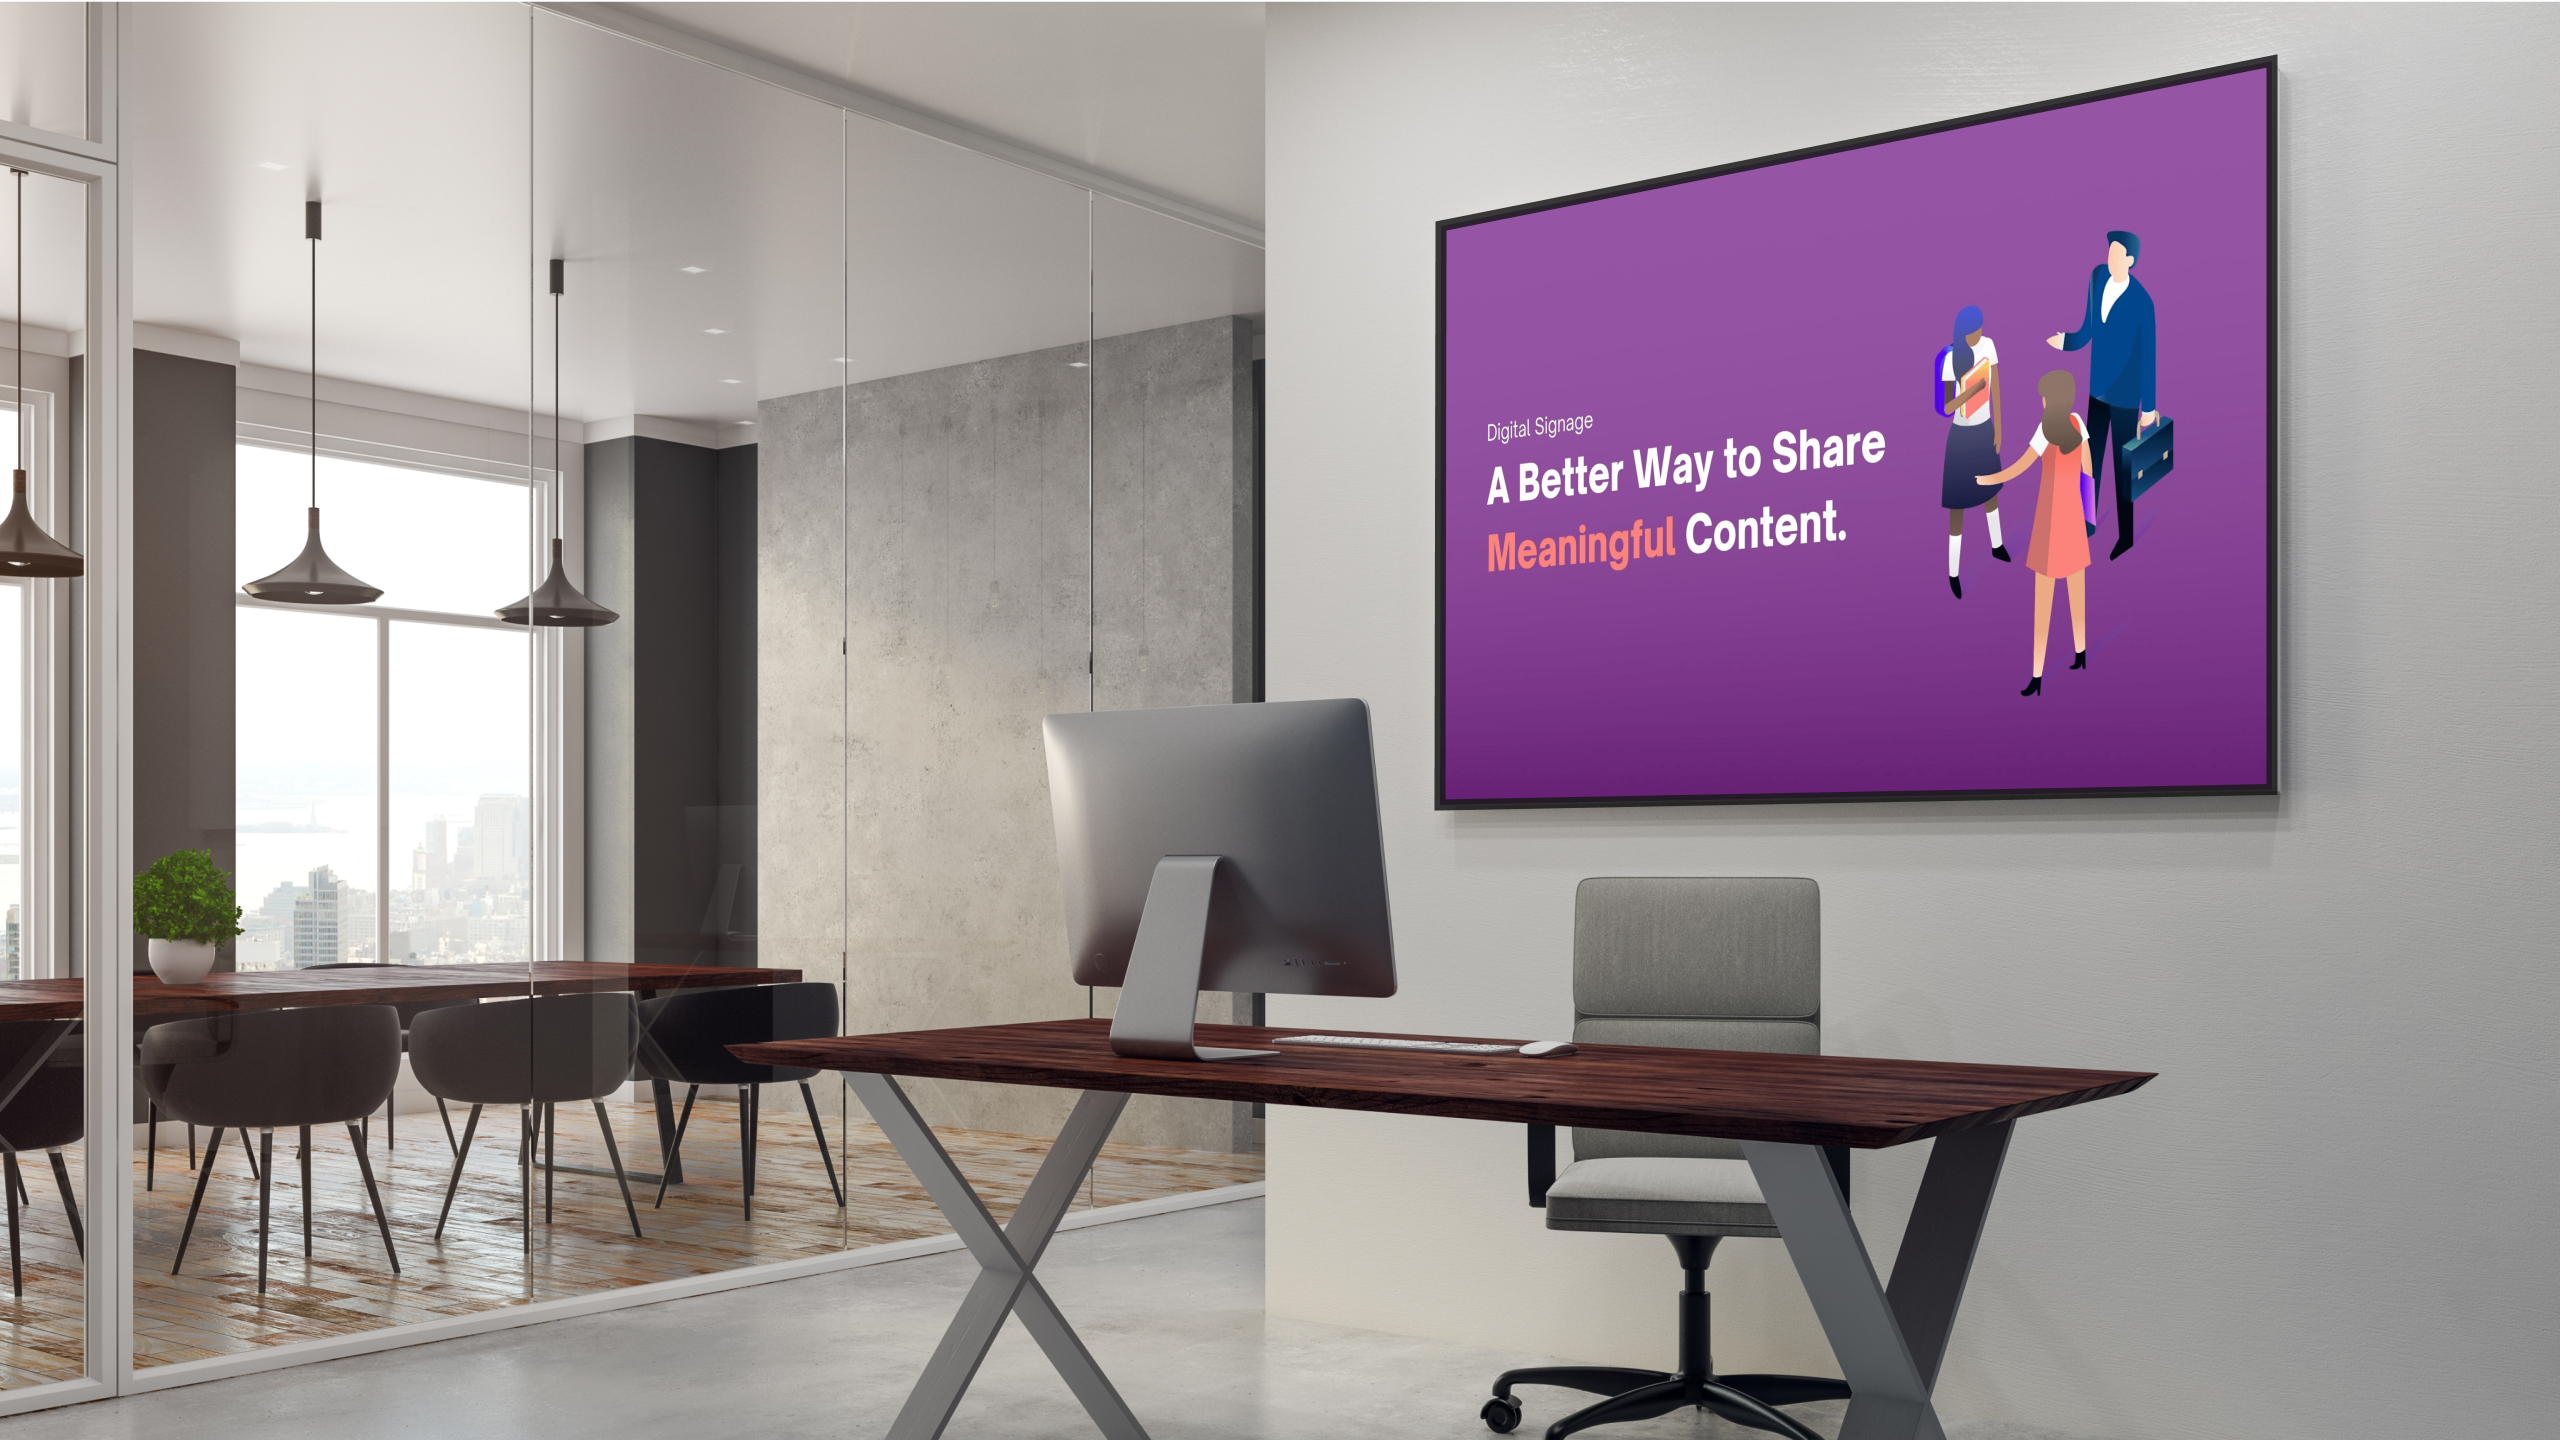 6 Ways to Do on Site Marketing and Advertising with Digital Signage